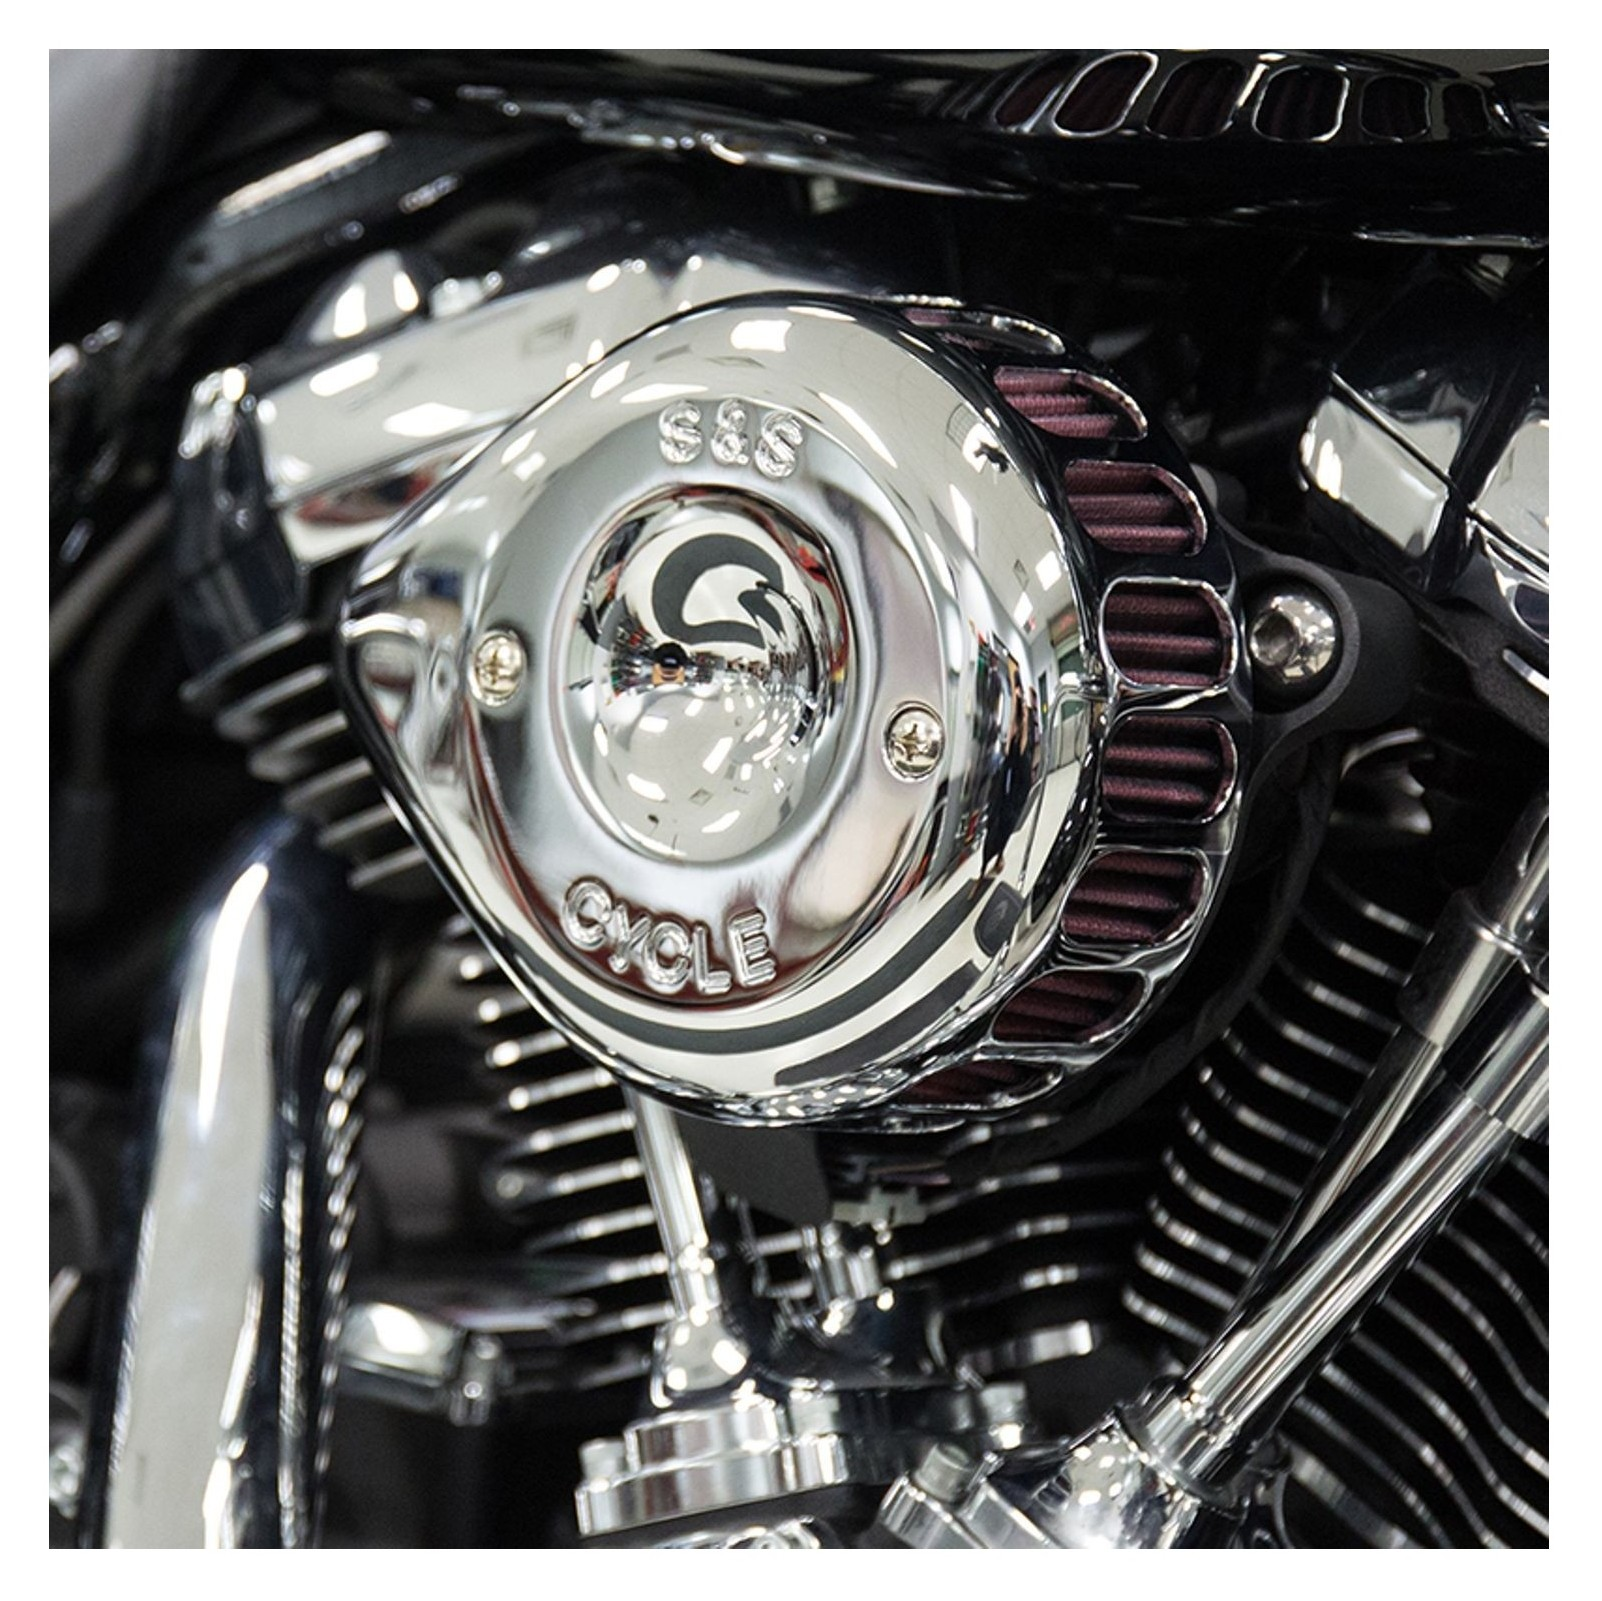 S&S Mini Teardrop Stealth Air Cleaner Kit For Harley | 10